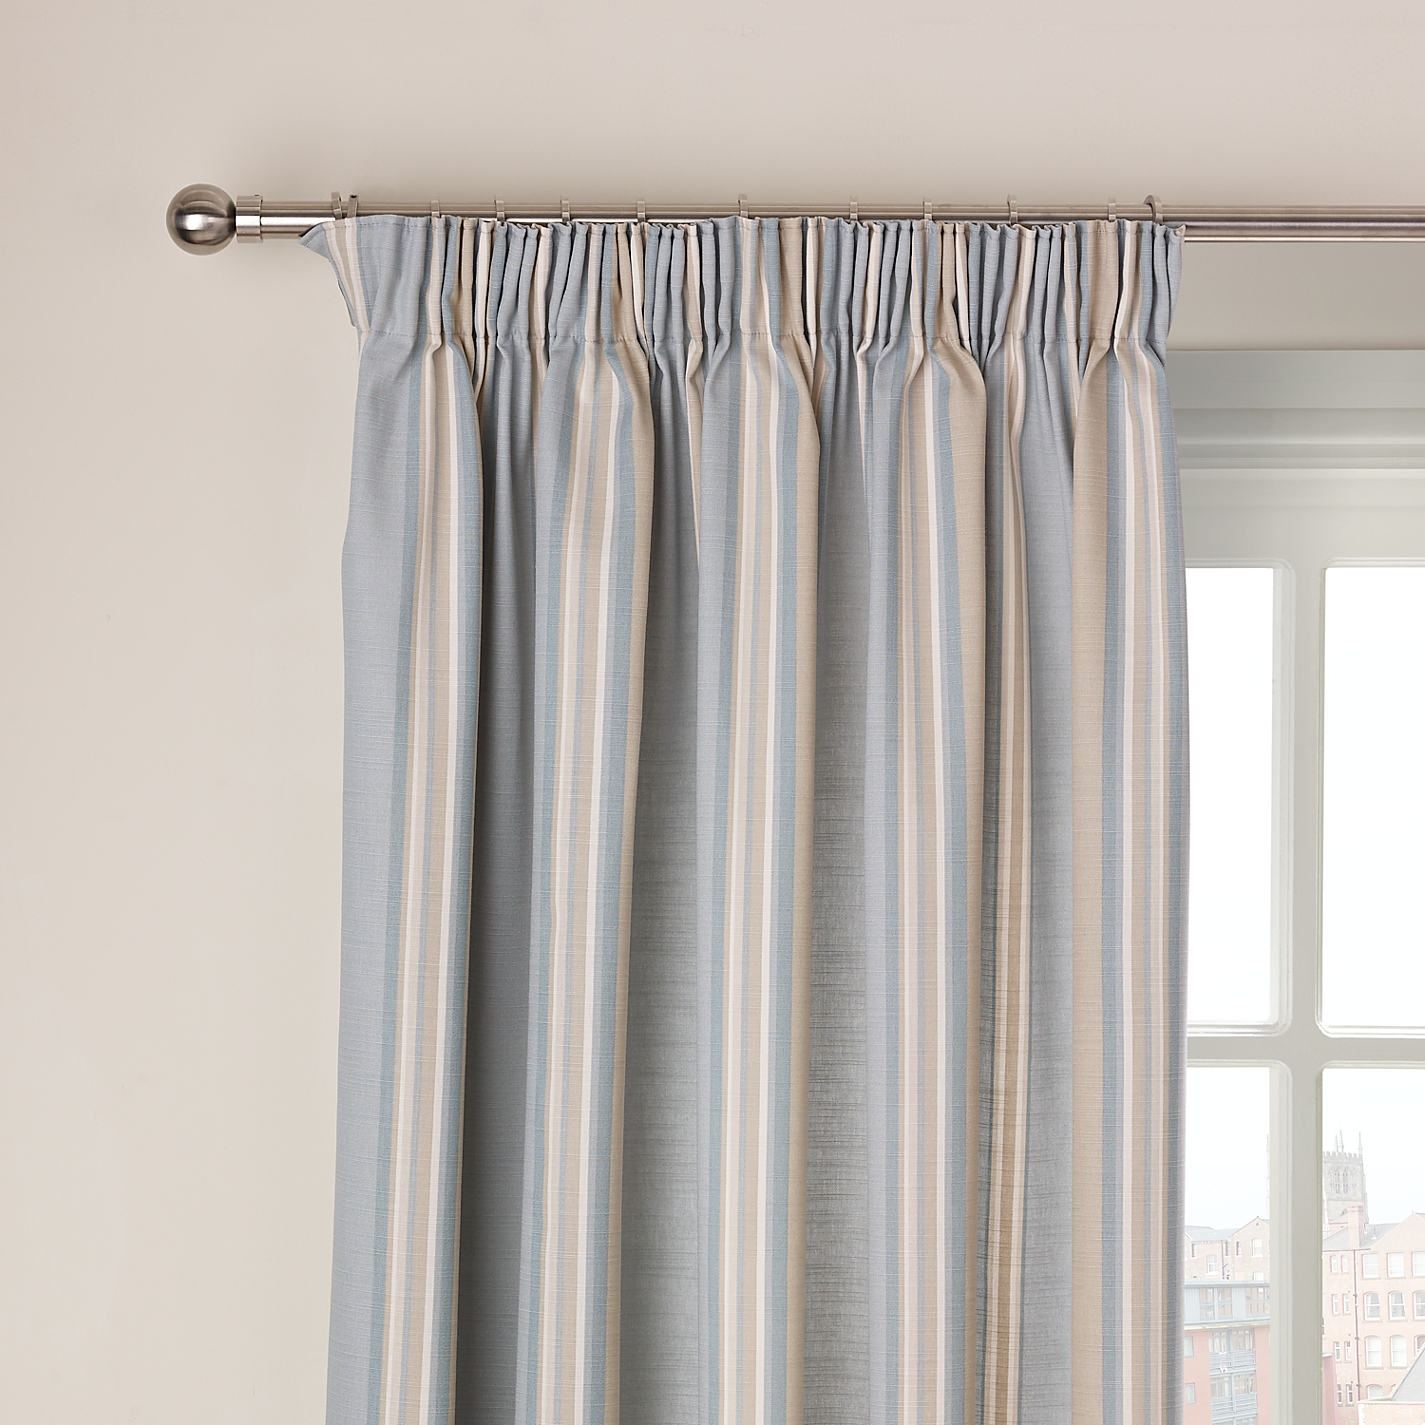 Pencil Pleat Curtains Buying Guides Egovjournal Home Within Pencil Pleat Curtains (Image 11 of 15)